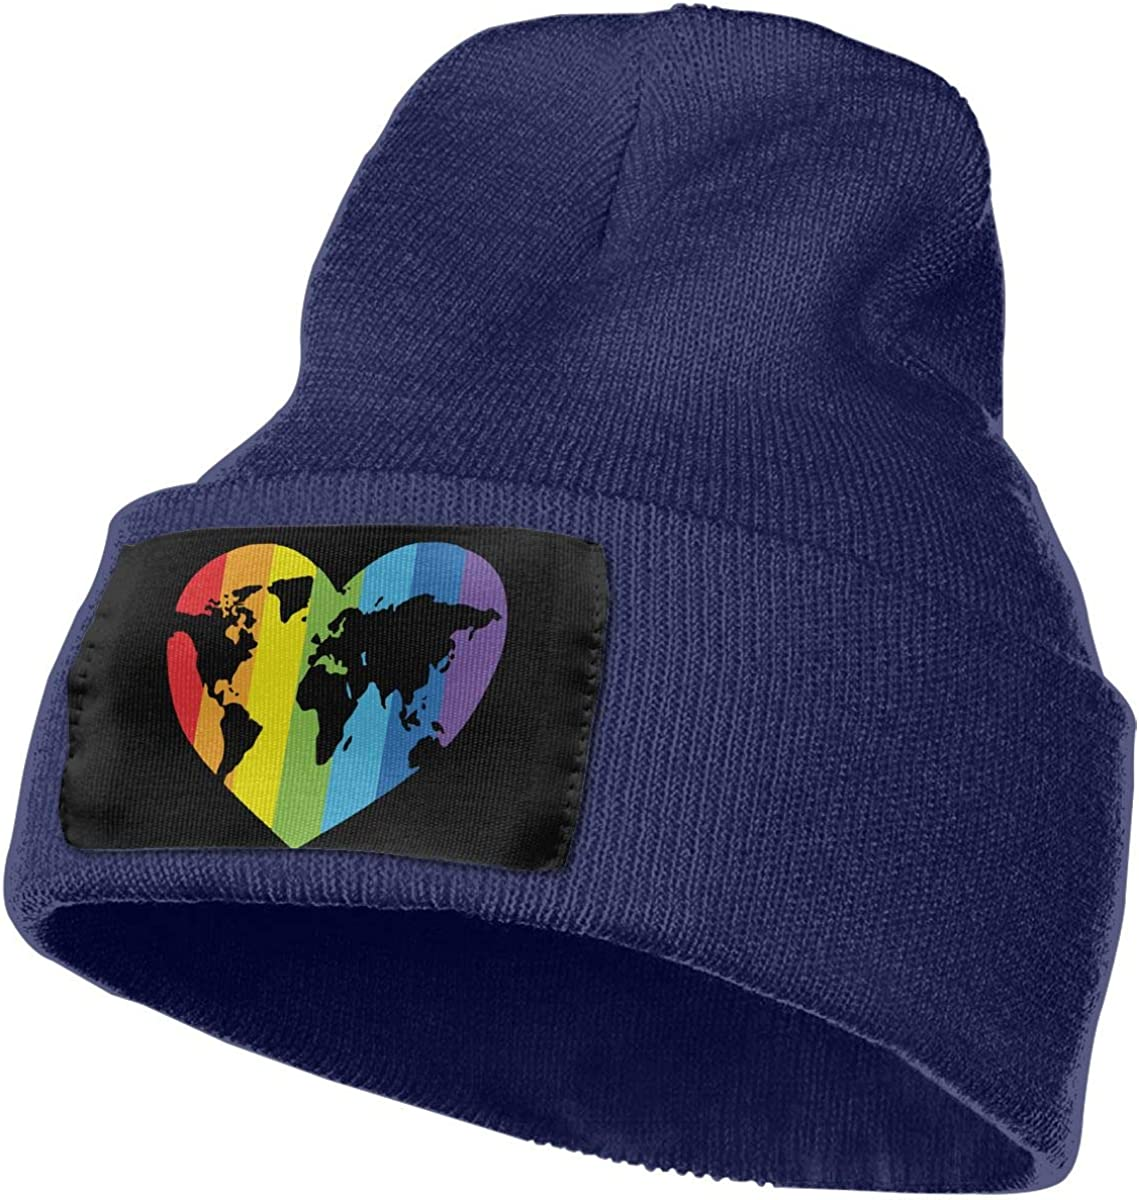 WHOO93@Y Mens and Womens 100/% Acrylic Knitting Hat Cap Gay Pride Fashion Skull Beanie